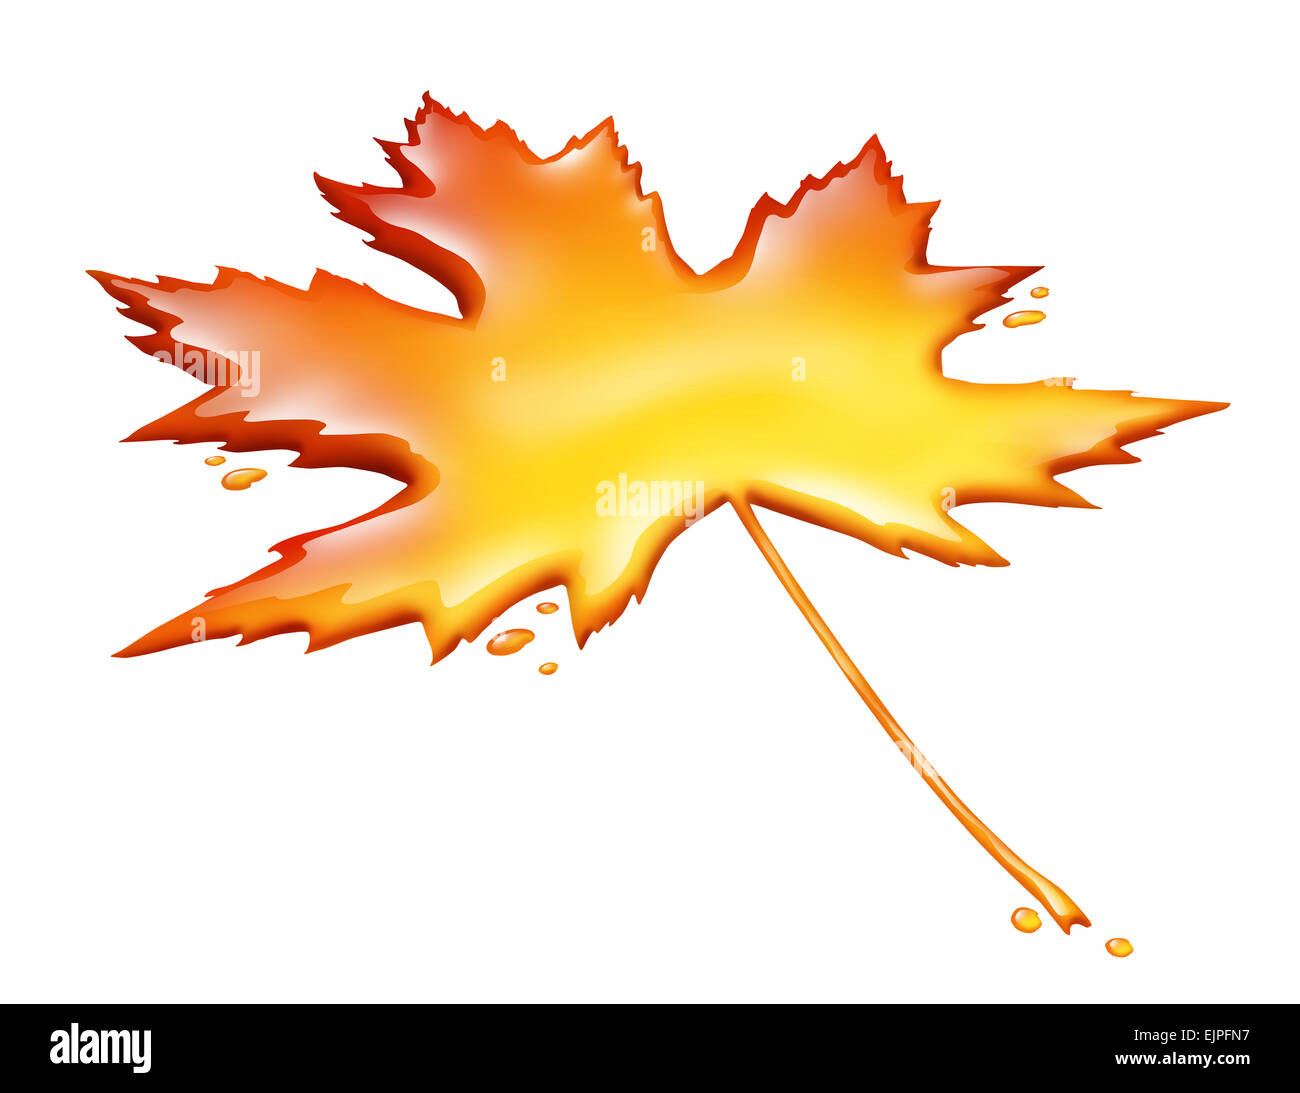 Maple syrup leaf isolated on a white background as a sweet golden brown delicious liquid representing a natural - Stock Image